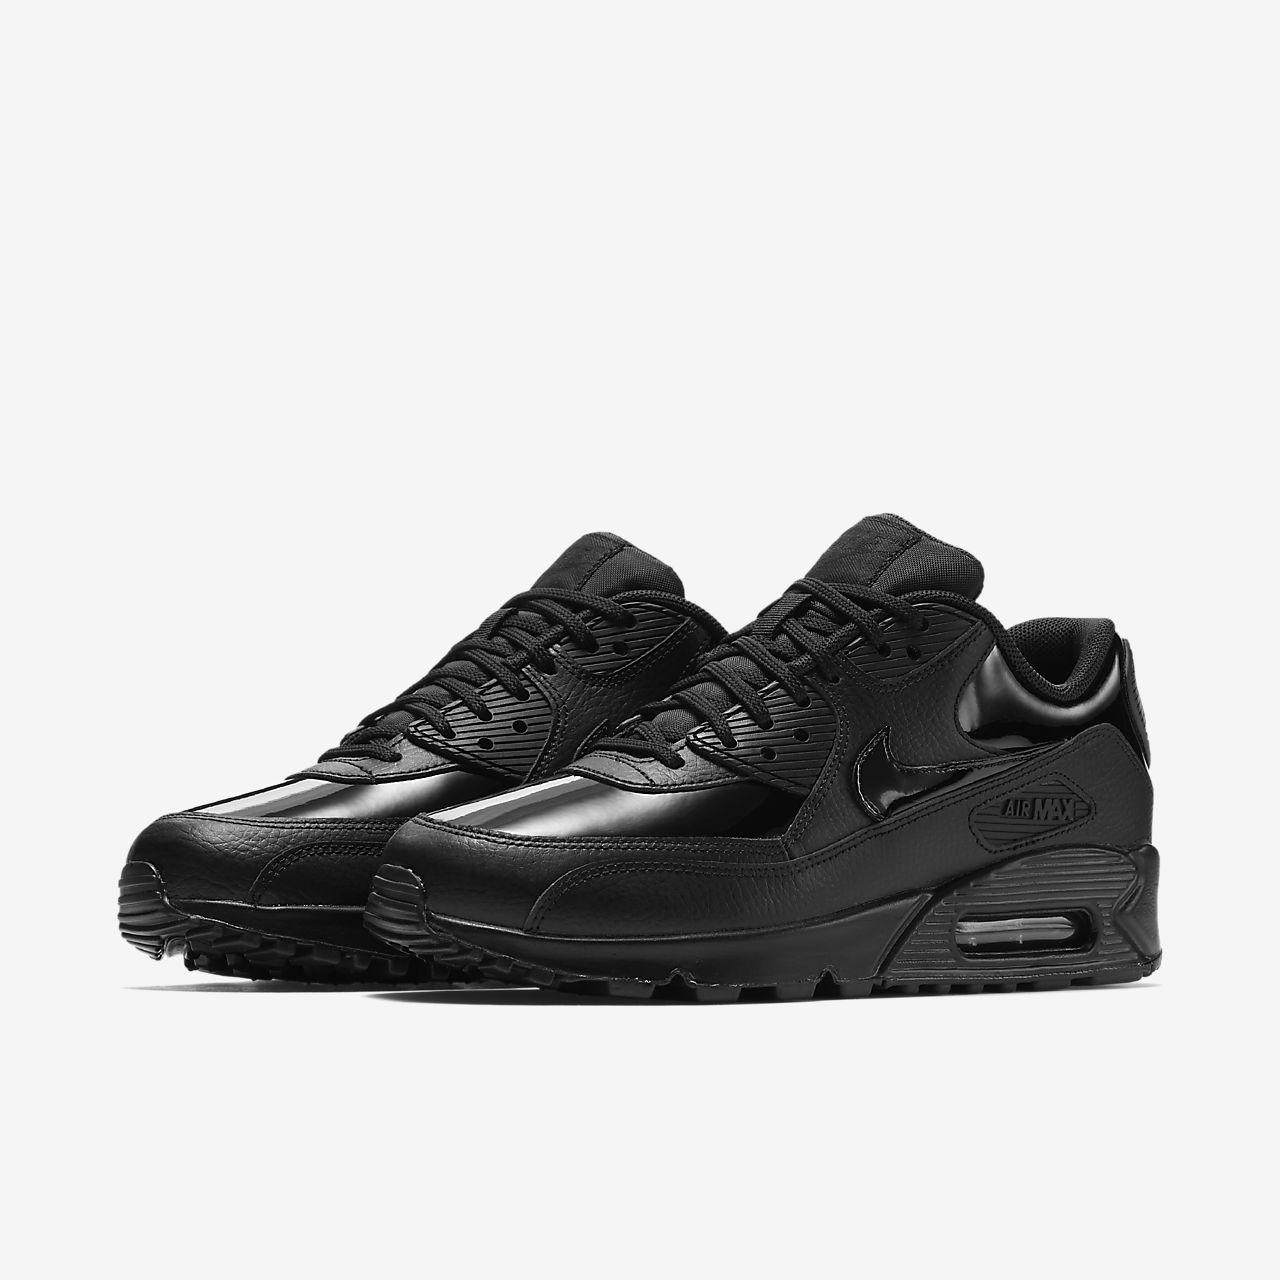 more photos f0bb9 37fbd ... shop nike air max 90 patent sko til kvinder 6883d 7422b